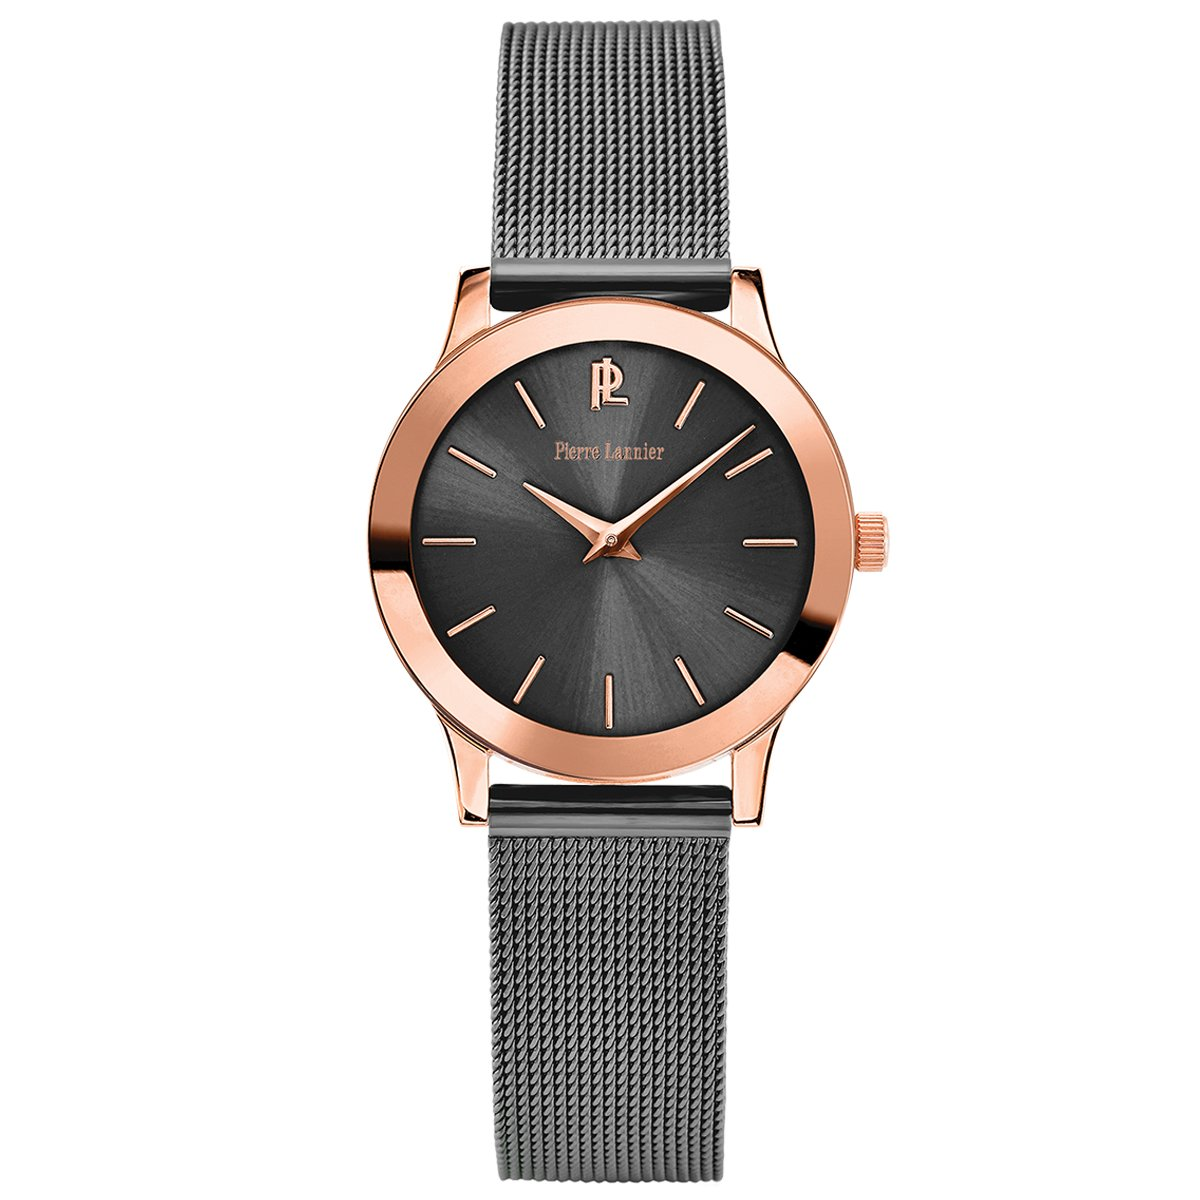 Women's Watch Pierre Lannier - 050J988 - WEEK-END LIGNE PURE - Grey and Rose-Gold - Milanese Band